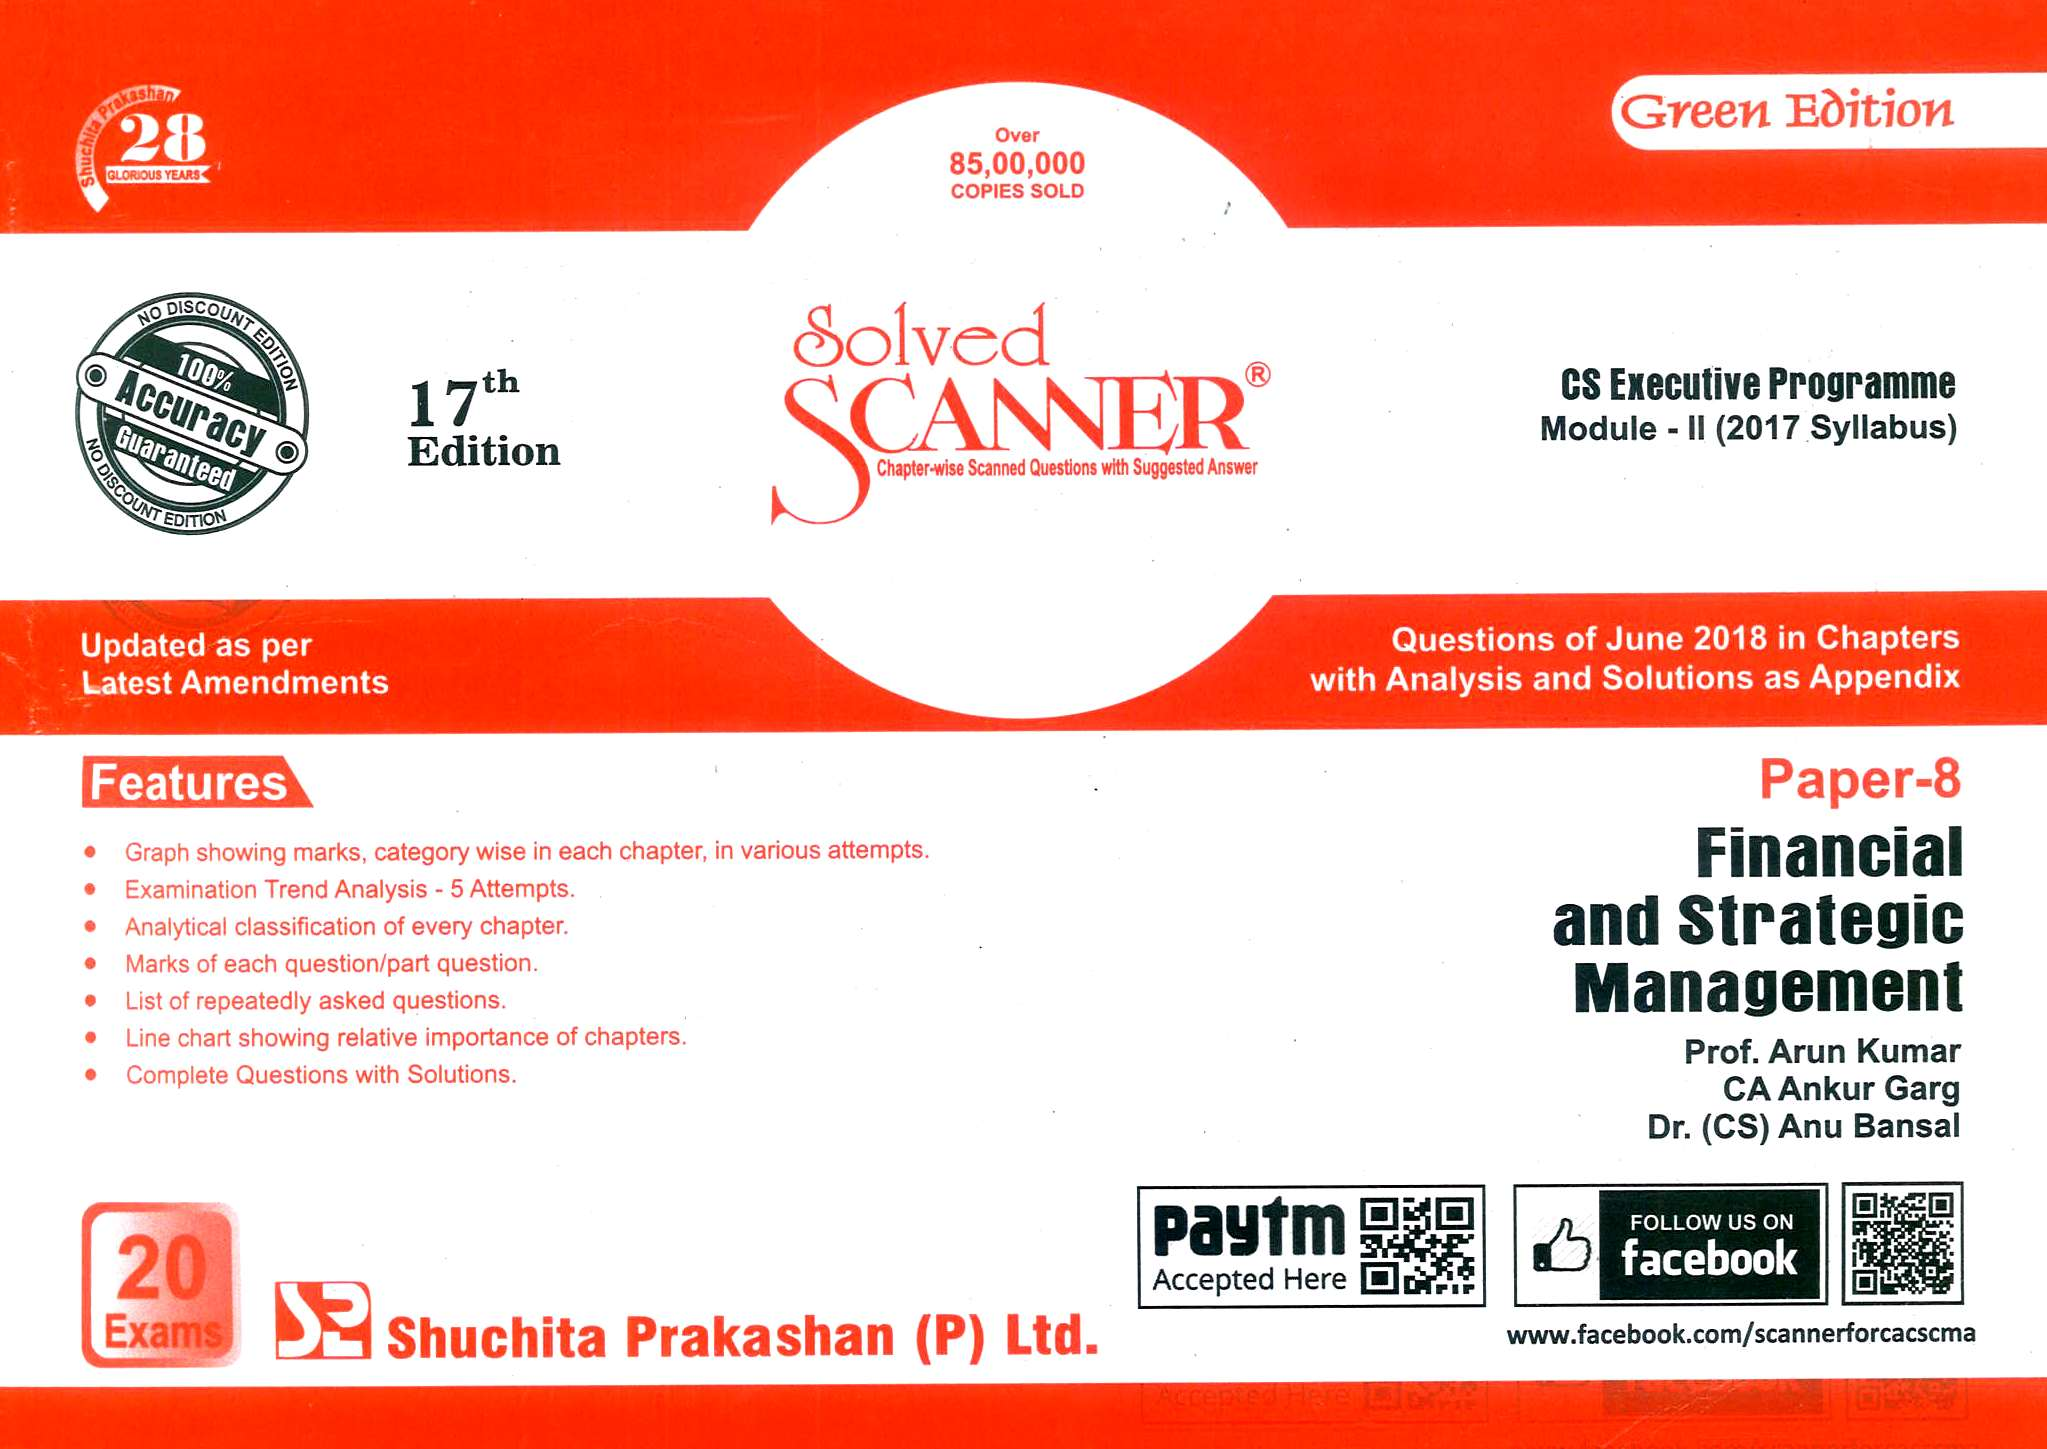 Shuchita Model Solved Scanner CS Executive Programme Module-II (2017 Syllabus) Paper-8 Financial And Strategic Management By Arun Kumar,Ankur Garg , Anu Bansal Applicable for December 2018 Exam